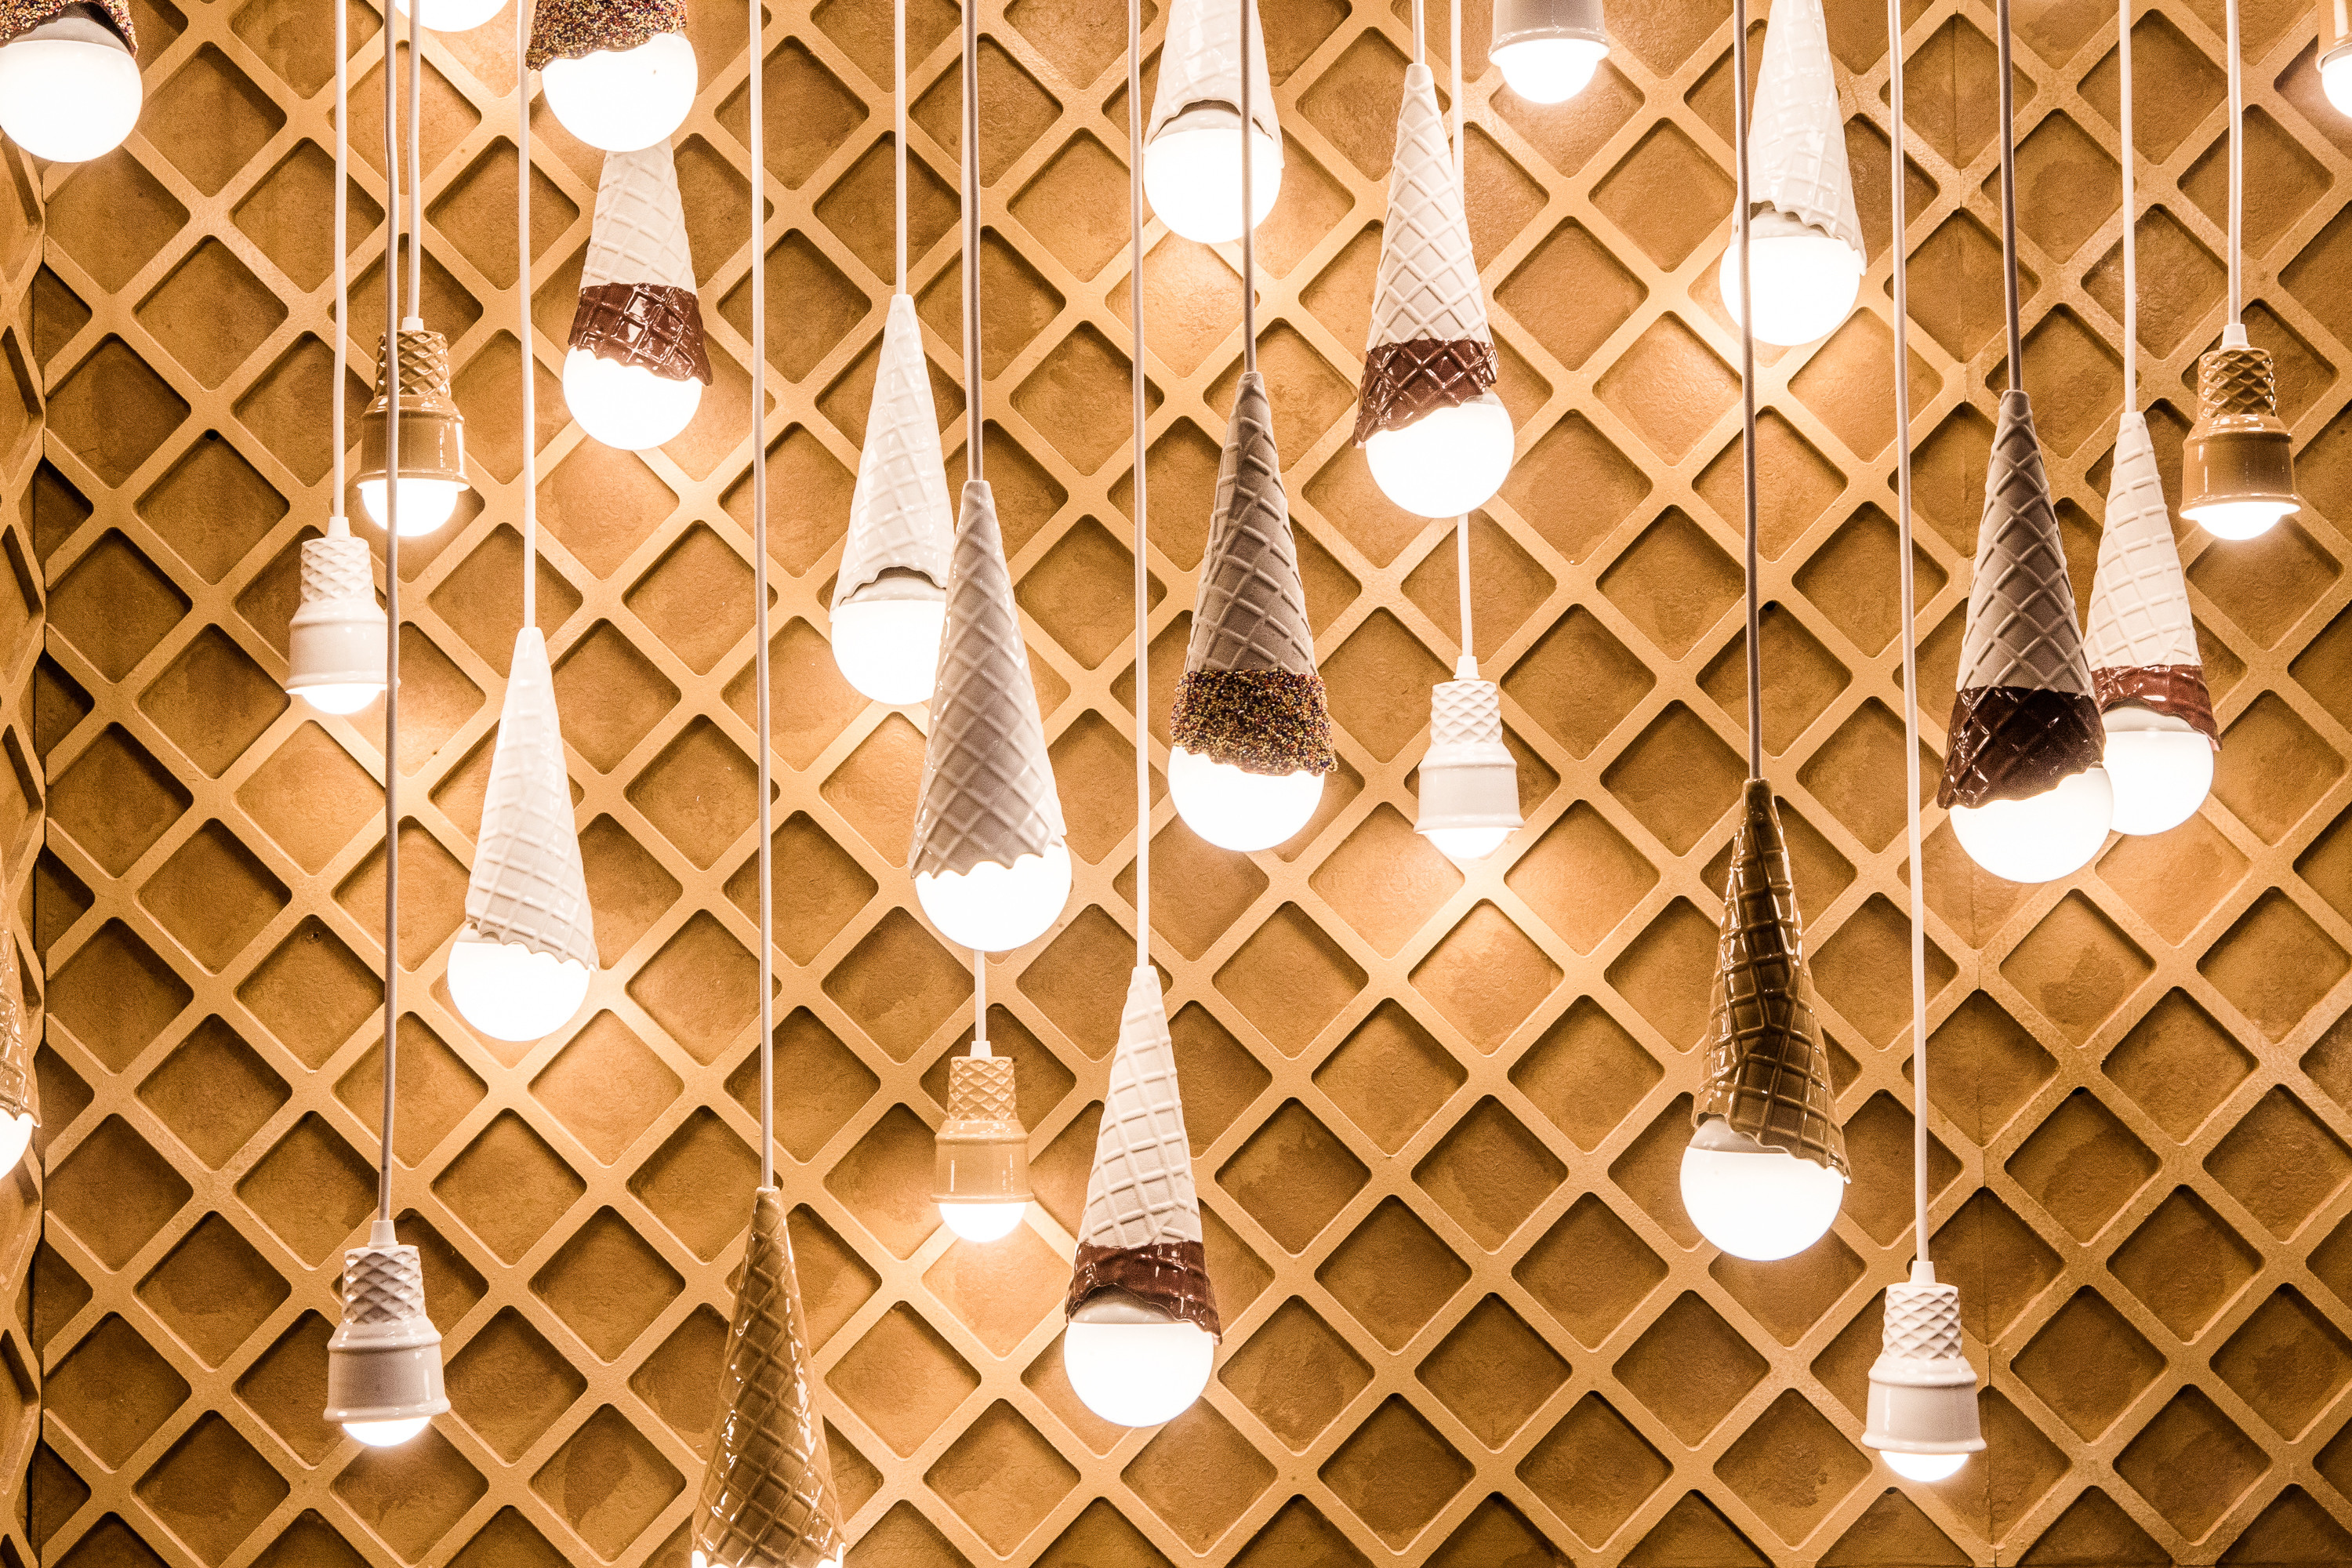 Dangling light fixtures created by artist Alex Garnett in a room dedicated to ice cream cones during a press preview of the Museum of Ice Cream in New York.